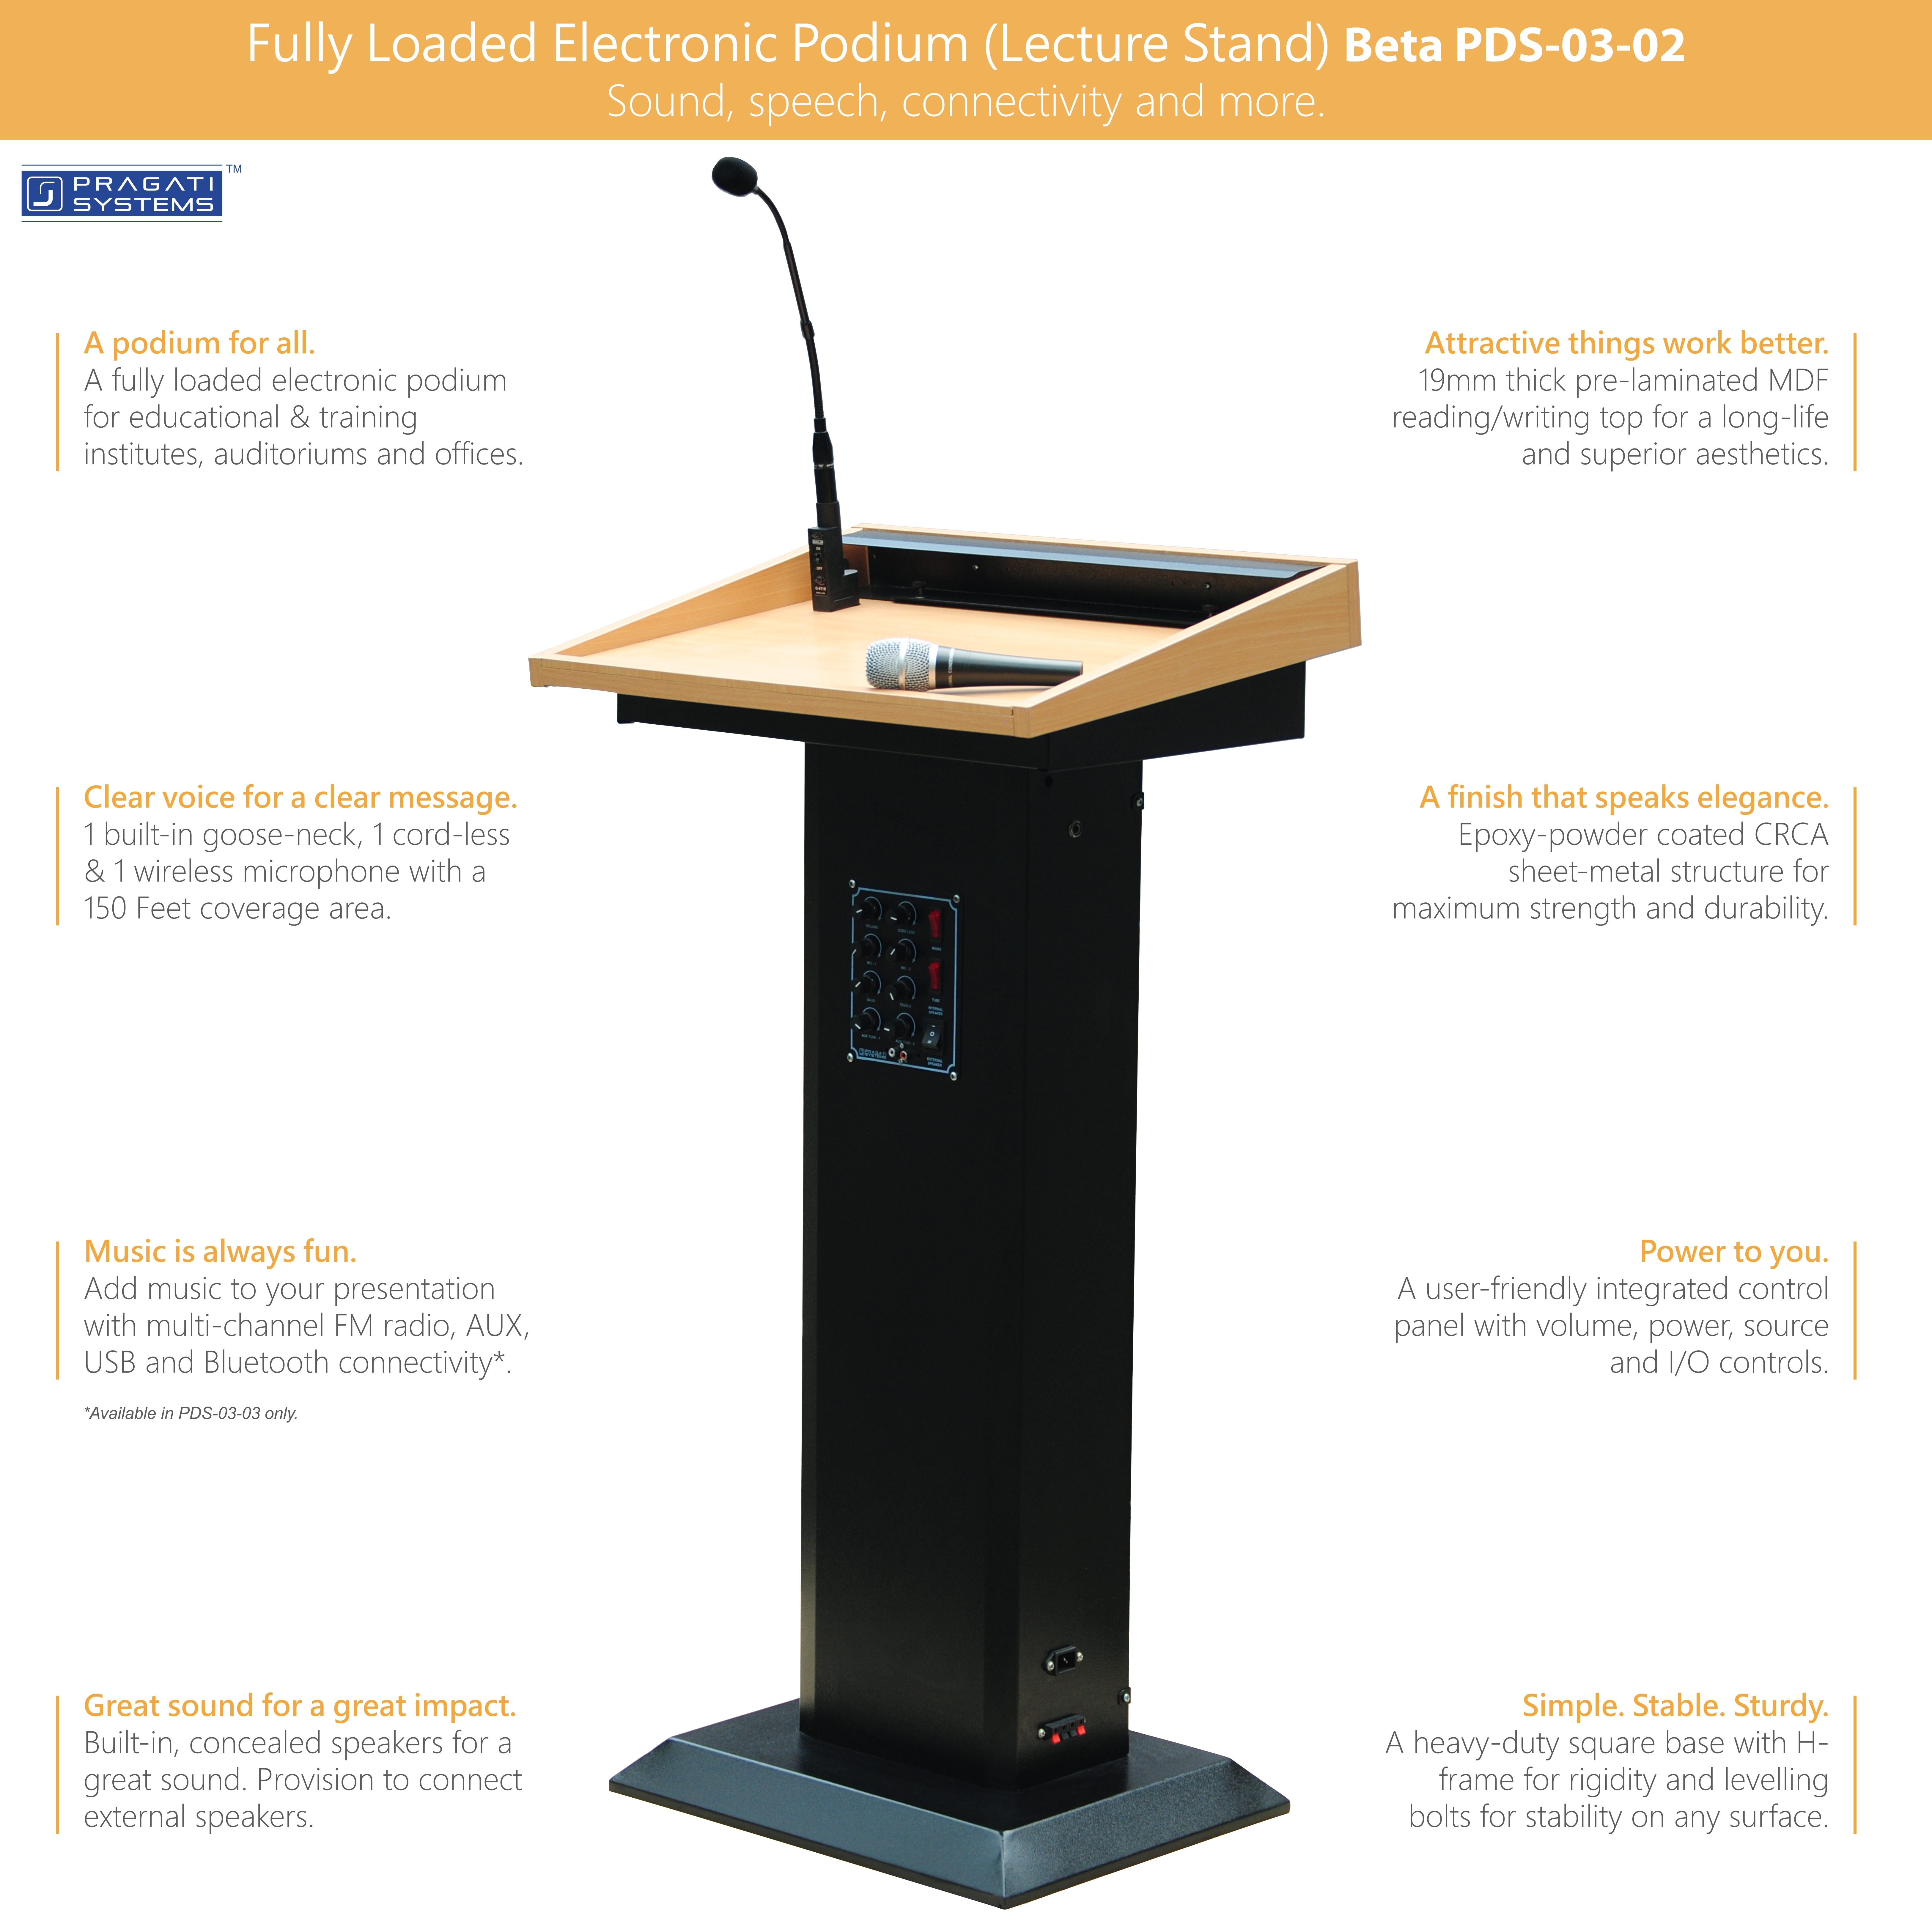 Fully Loaded Digital Podium (Lecture Stand) Manufacturer, Supplier